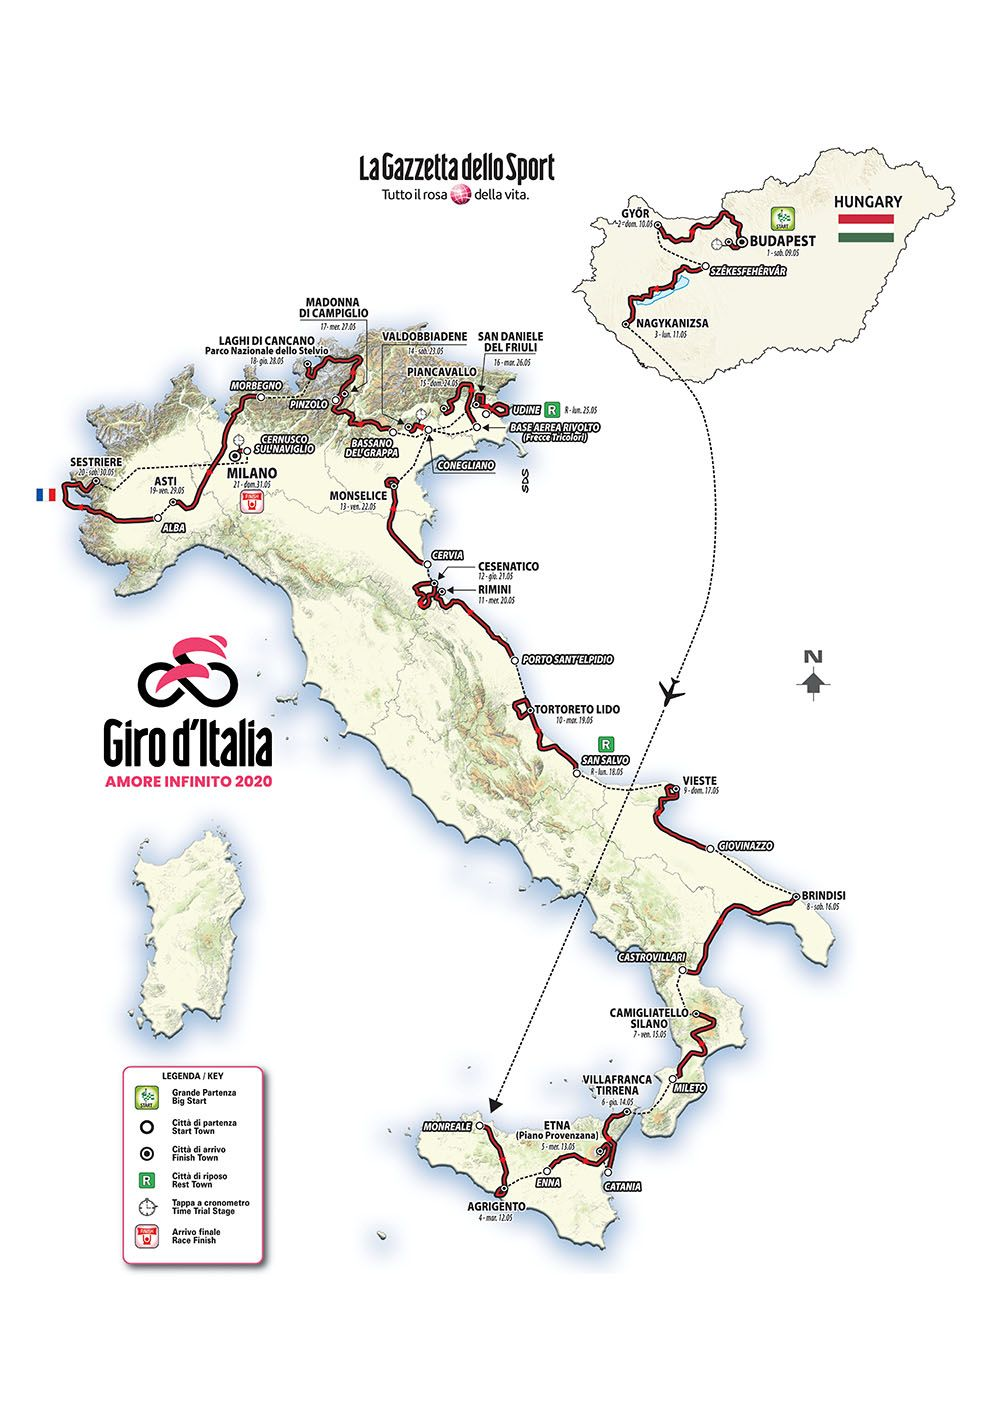 2020 Giro d'Italia wildcard teams announced